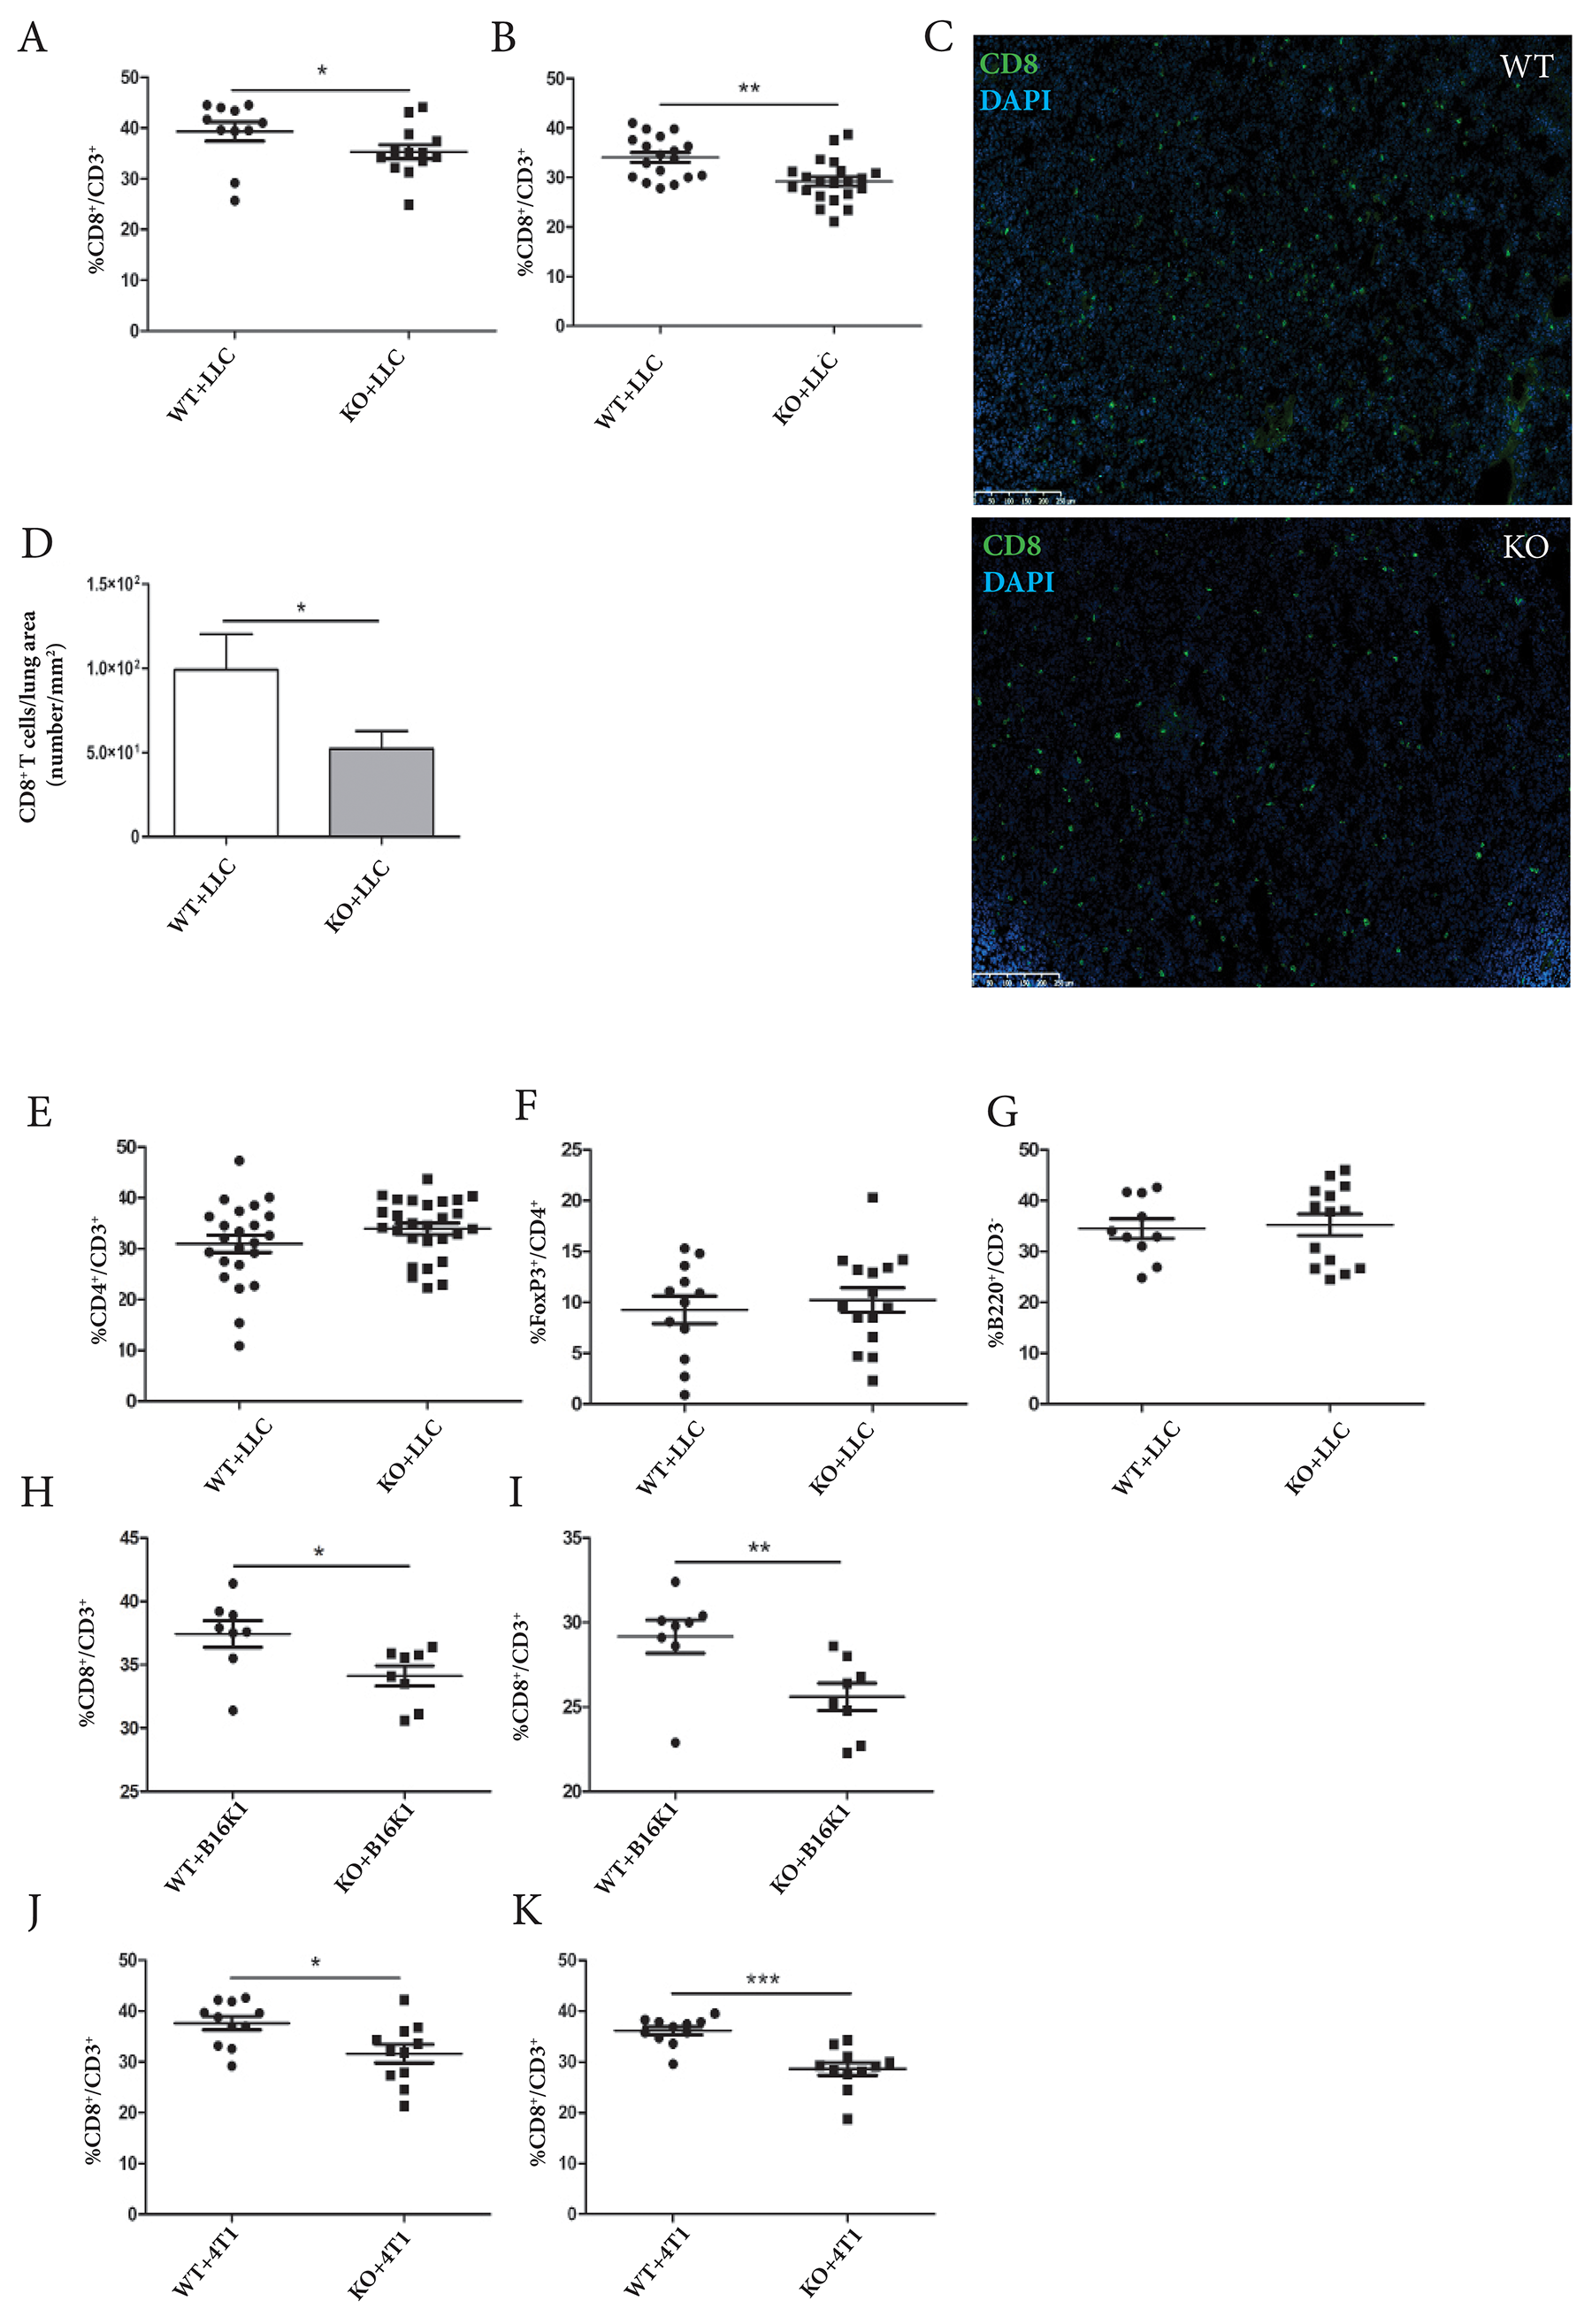 ADAM28 deficiency affects CD8+ T cell mobilization to splenic and pulmonary tissues in tumor-bearing mice.